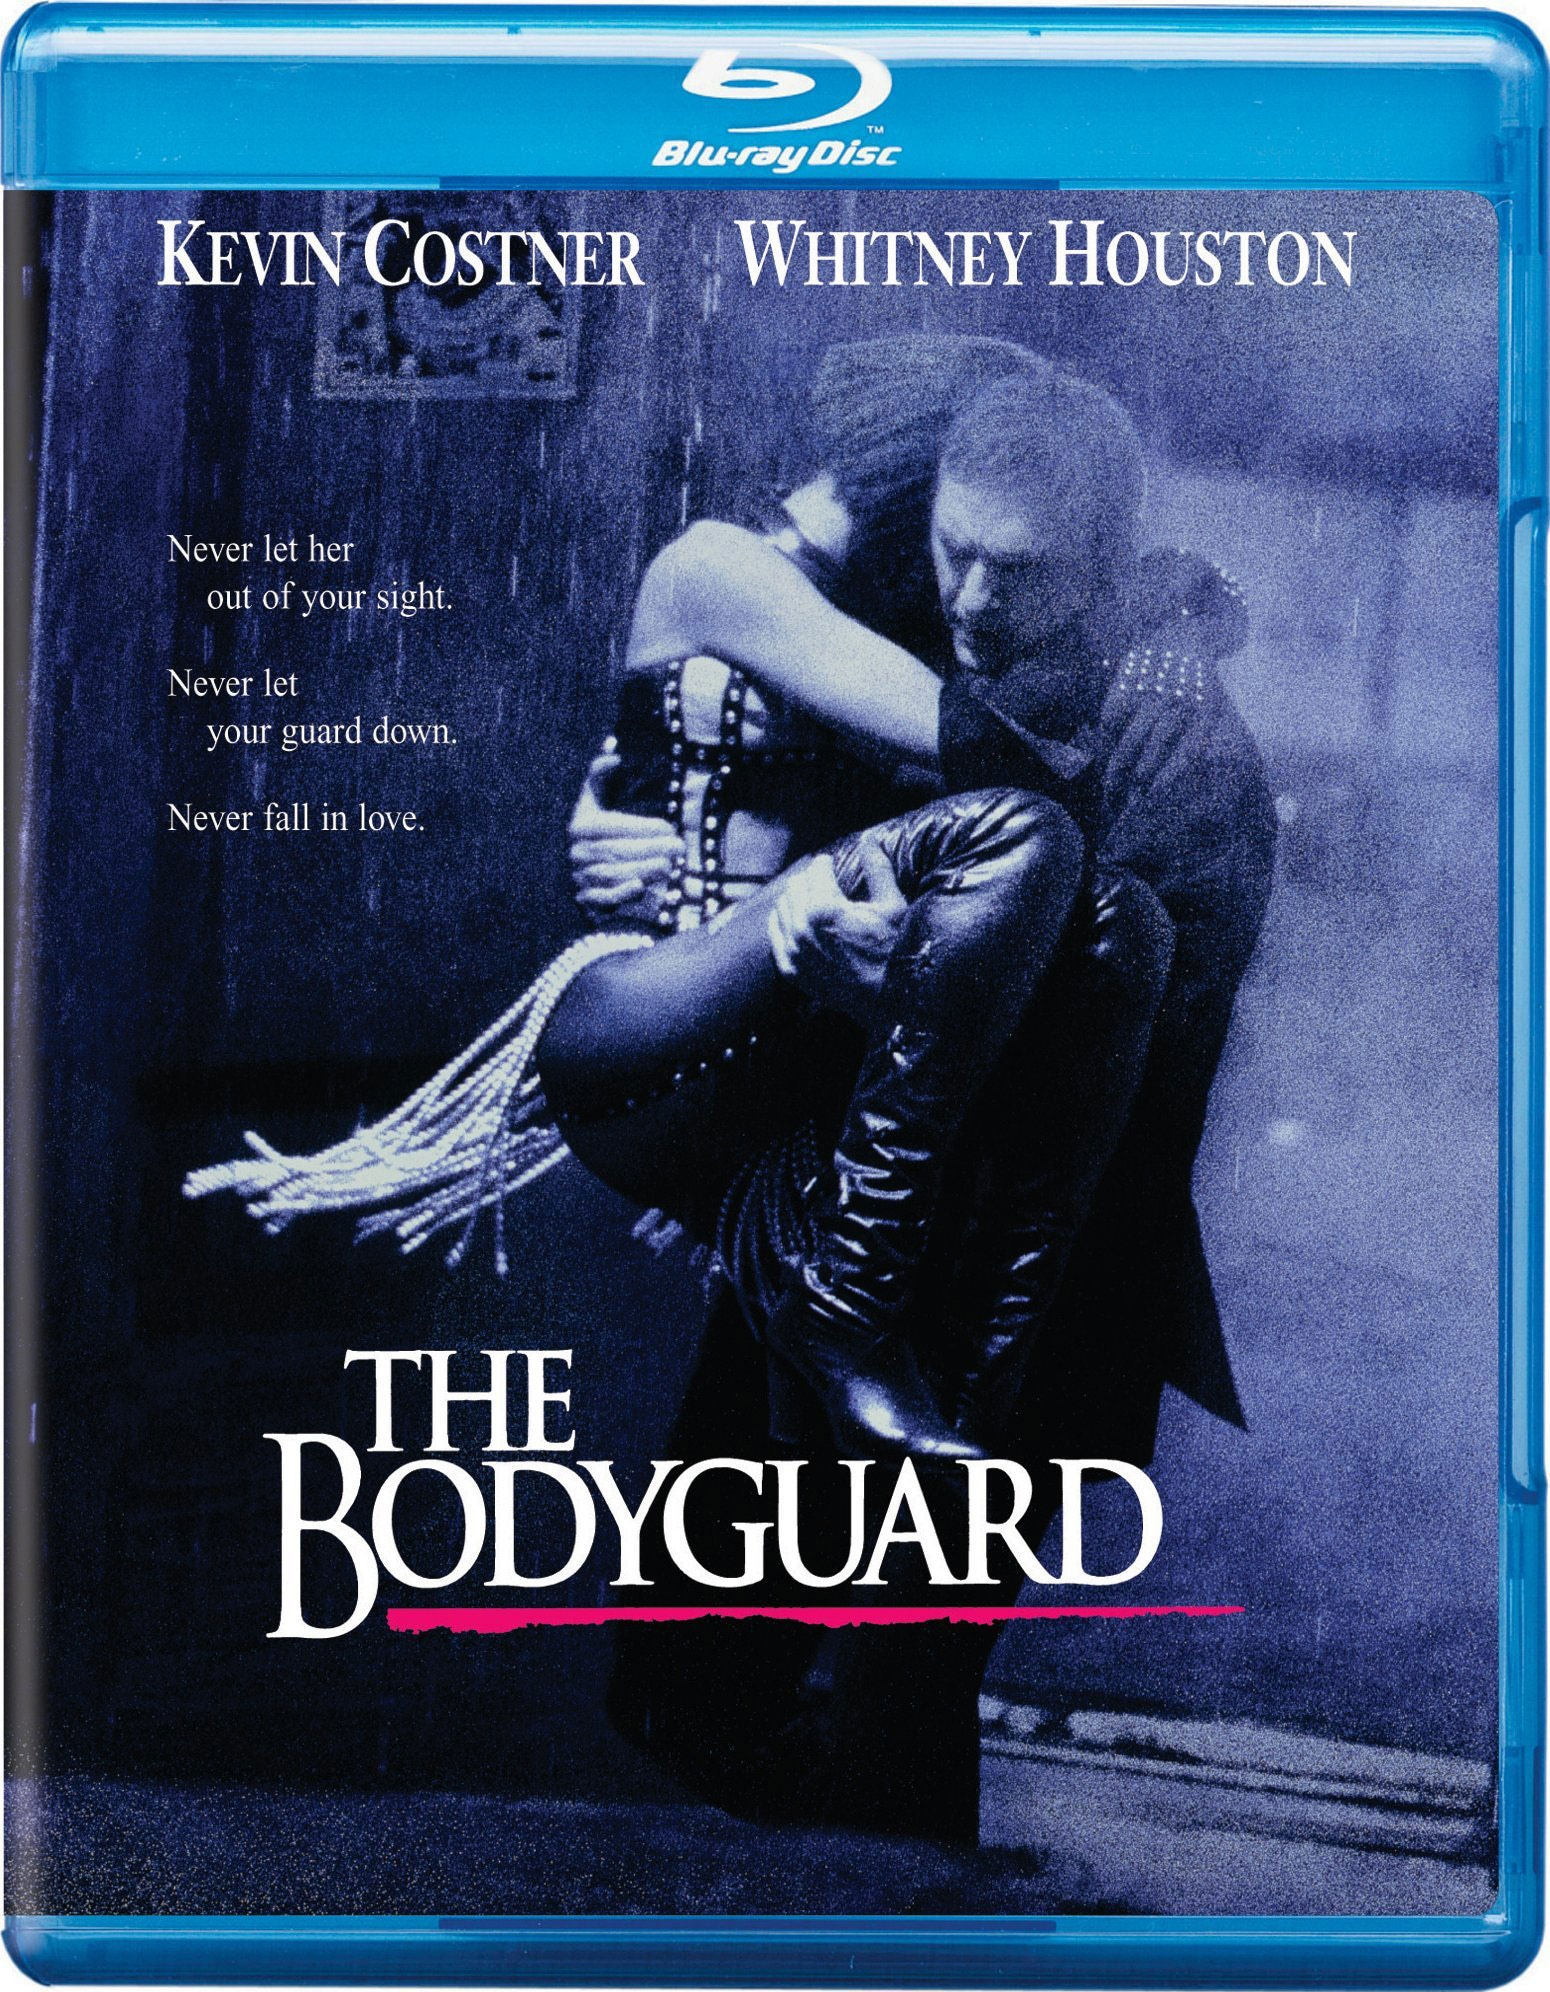 The Bodyguard (Blu-ray Disc)